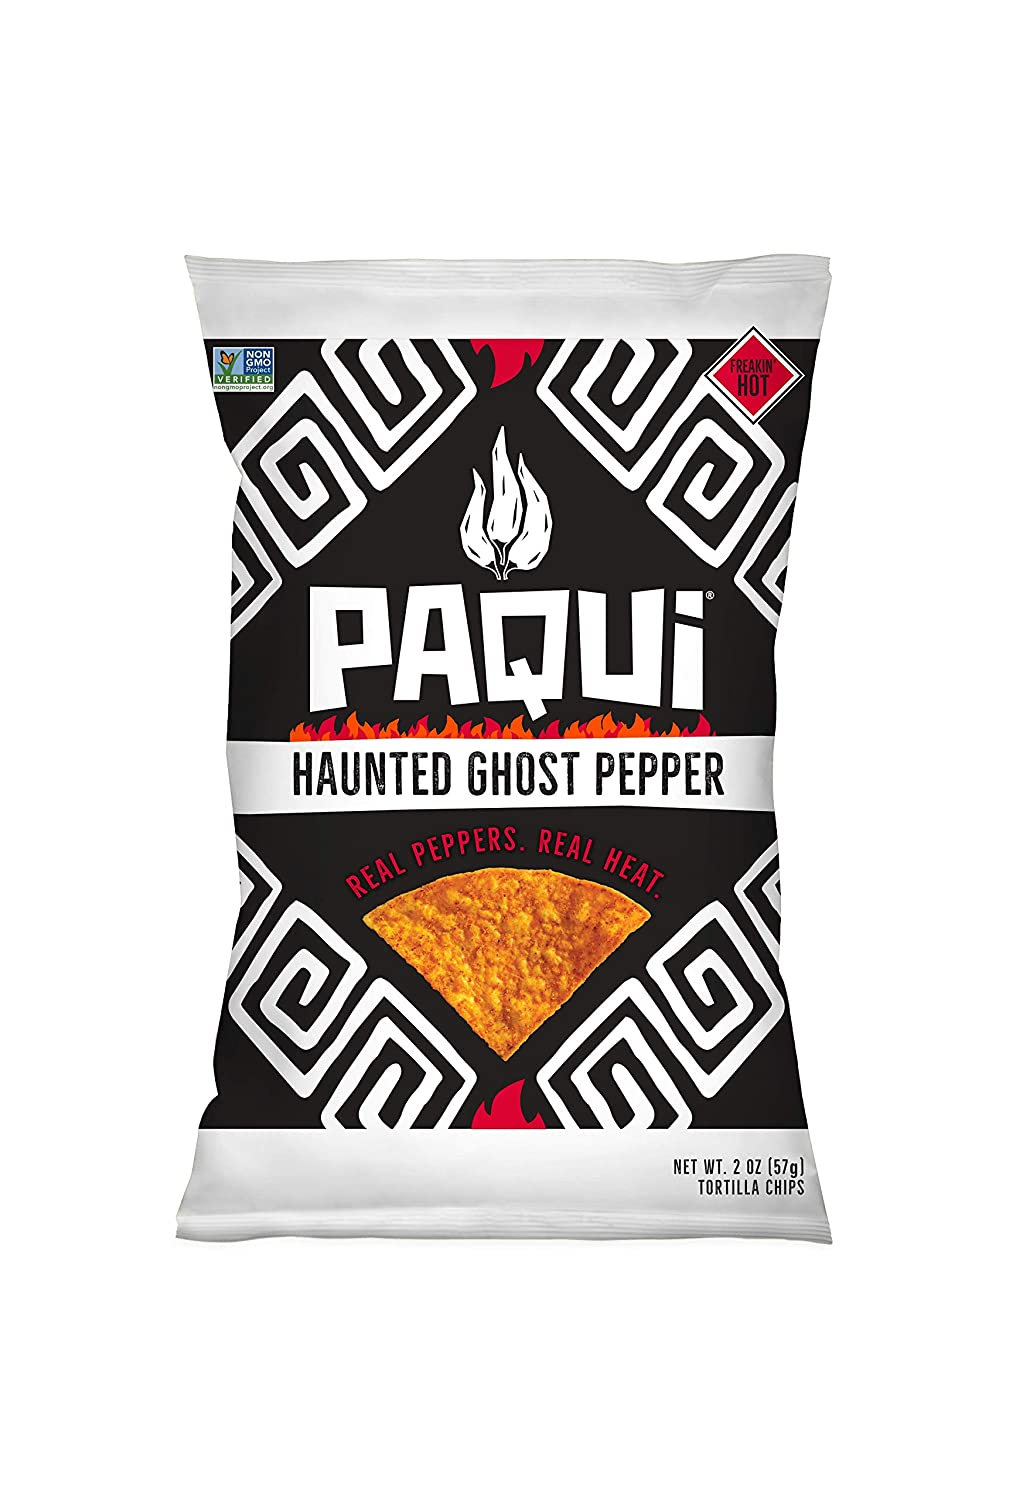 Paqui Spicy Hot Tortilla Chips, Gluten Free Snacks, Non-GMO, Haunted Ghost Pepper, 2oz Individual Snack Sized Bags (Pack of 6)